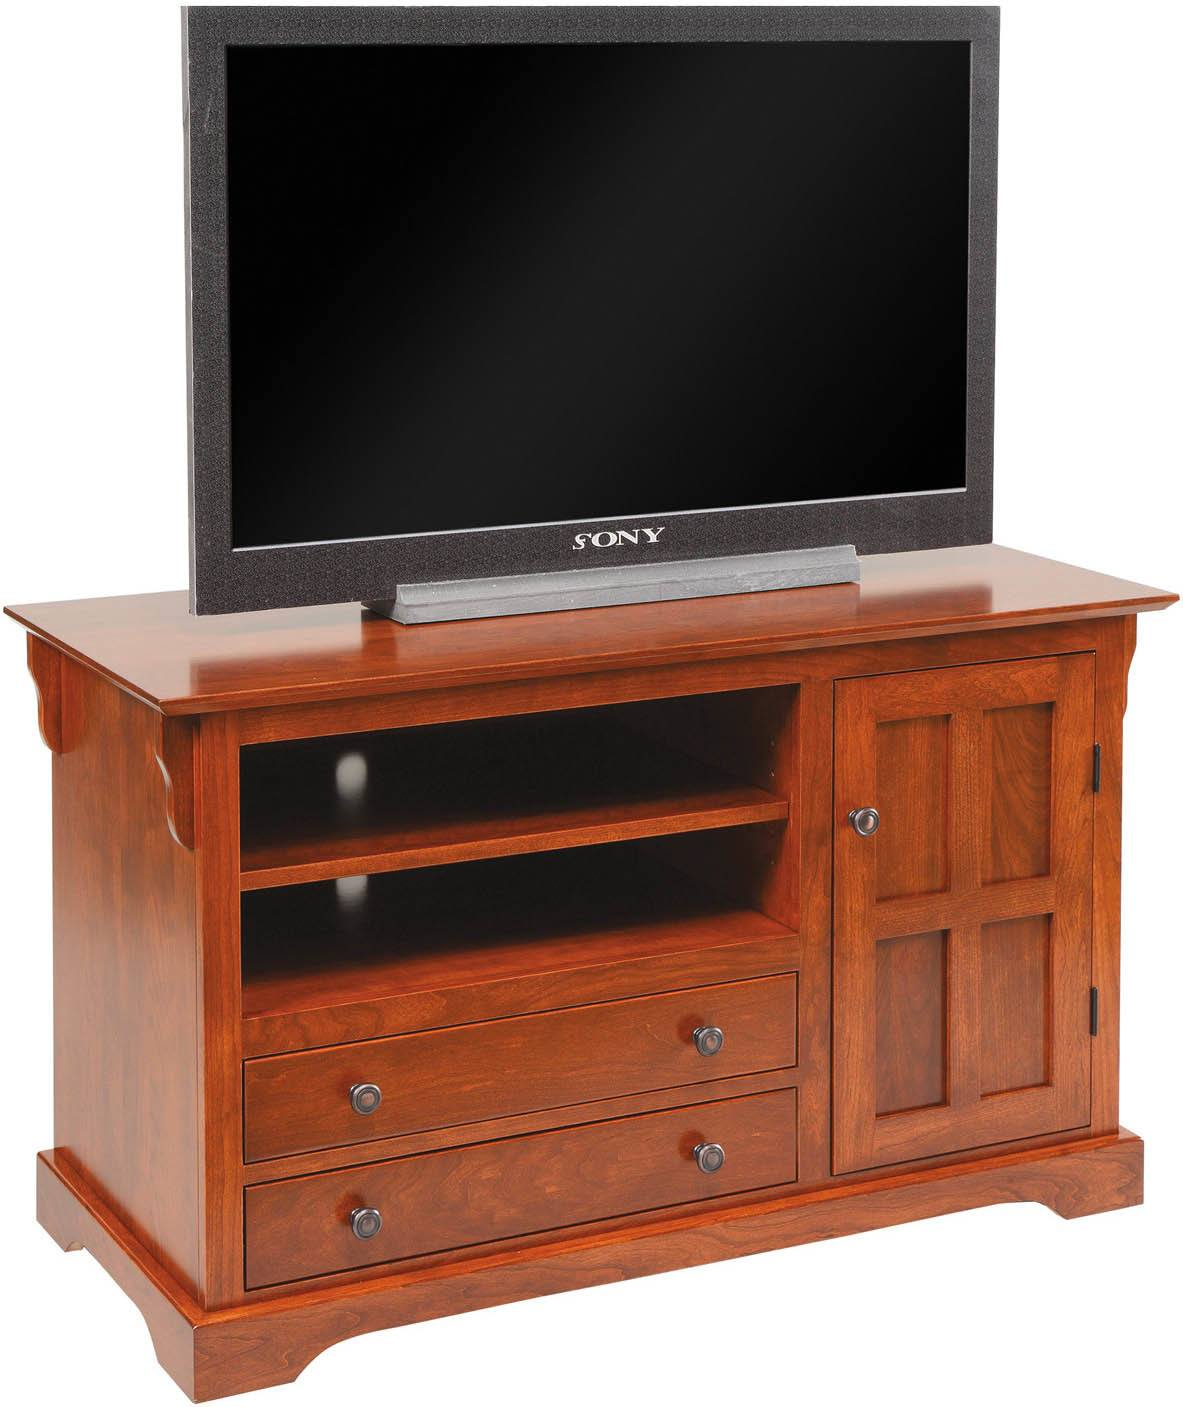 45 1/2 inch Mission Hills T.V. Stand